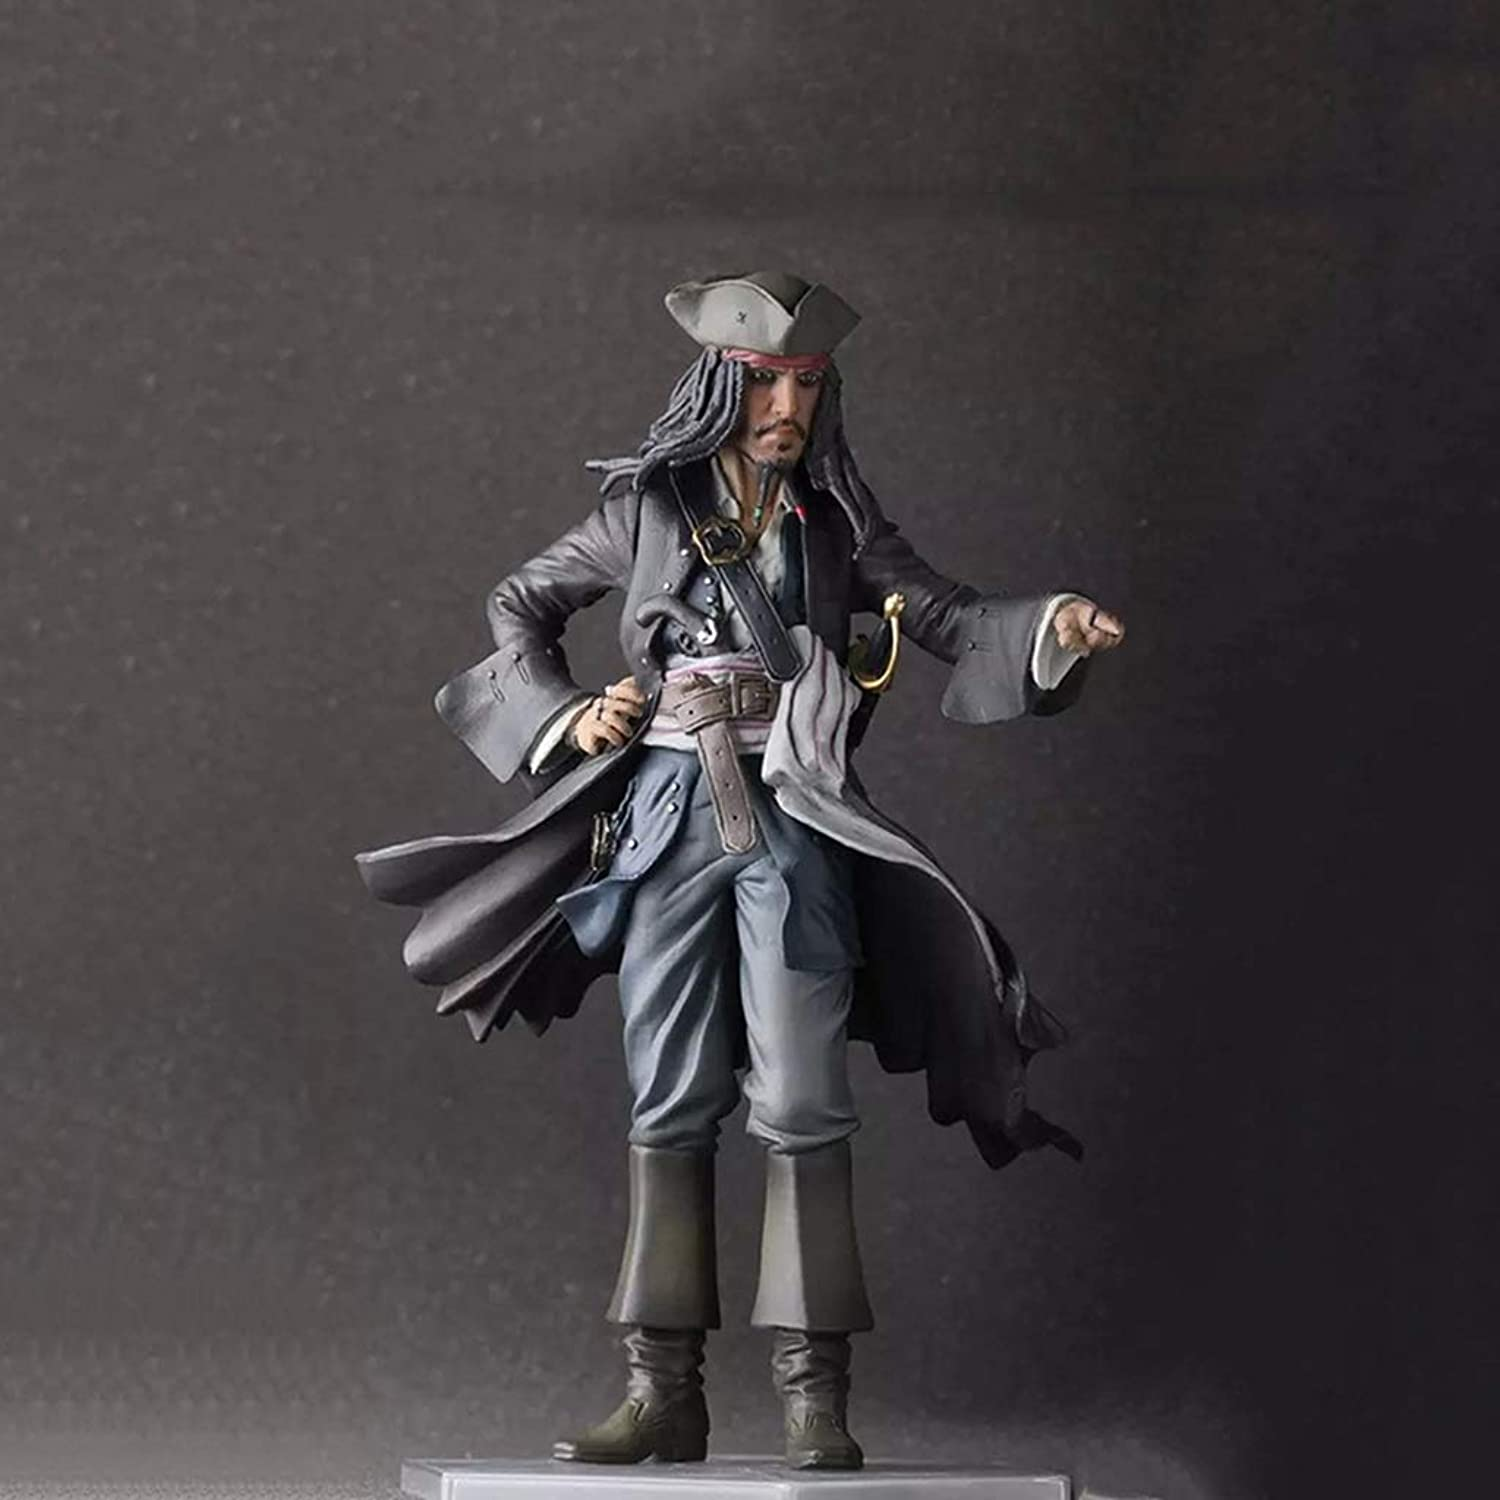 CQOZ Anime Model Caribbean Pirates Jack Captain Depp Statue Height 30cm Decorations Gifts Collections Birthday Gifts Character statue